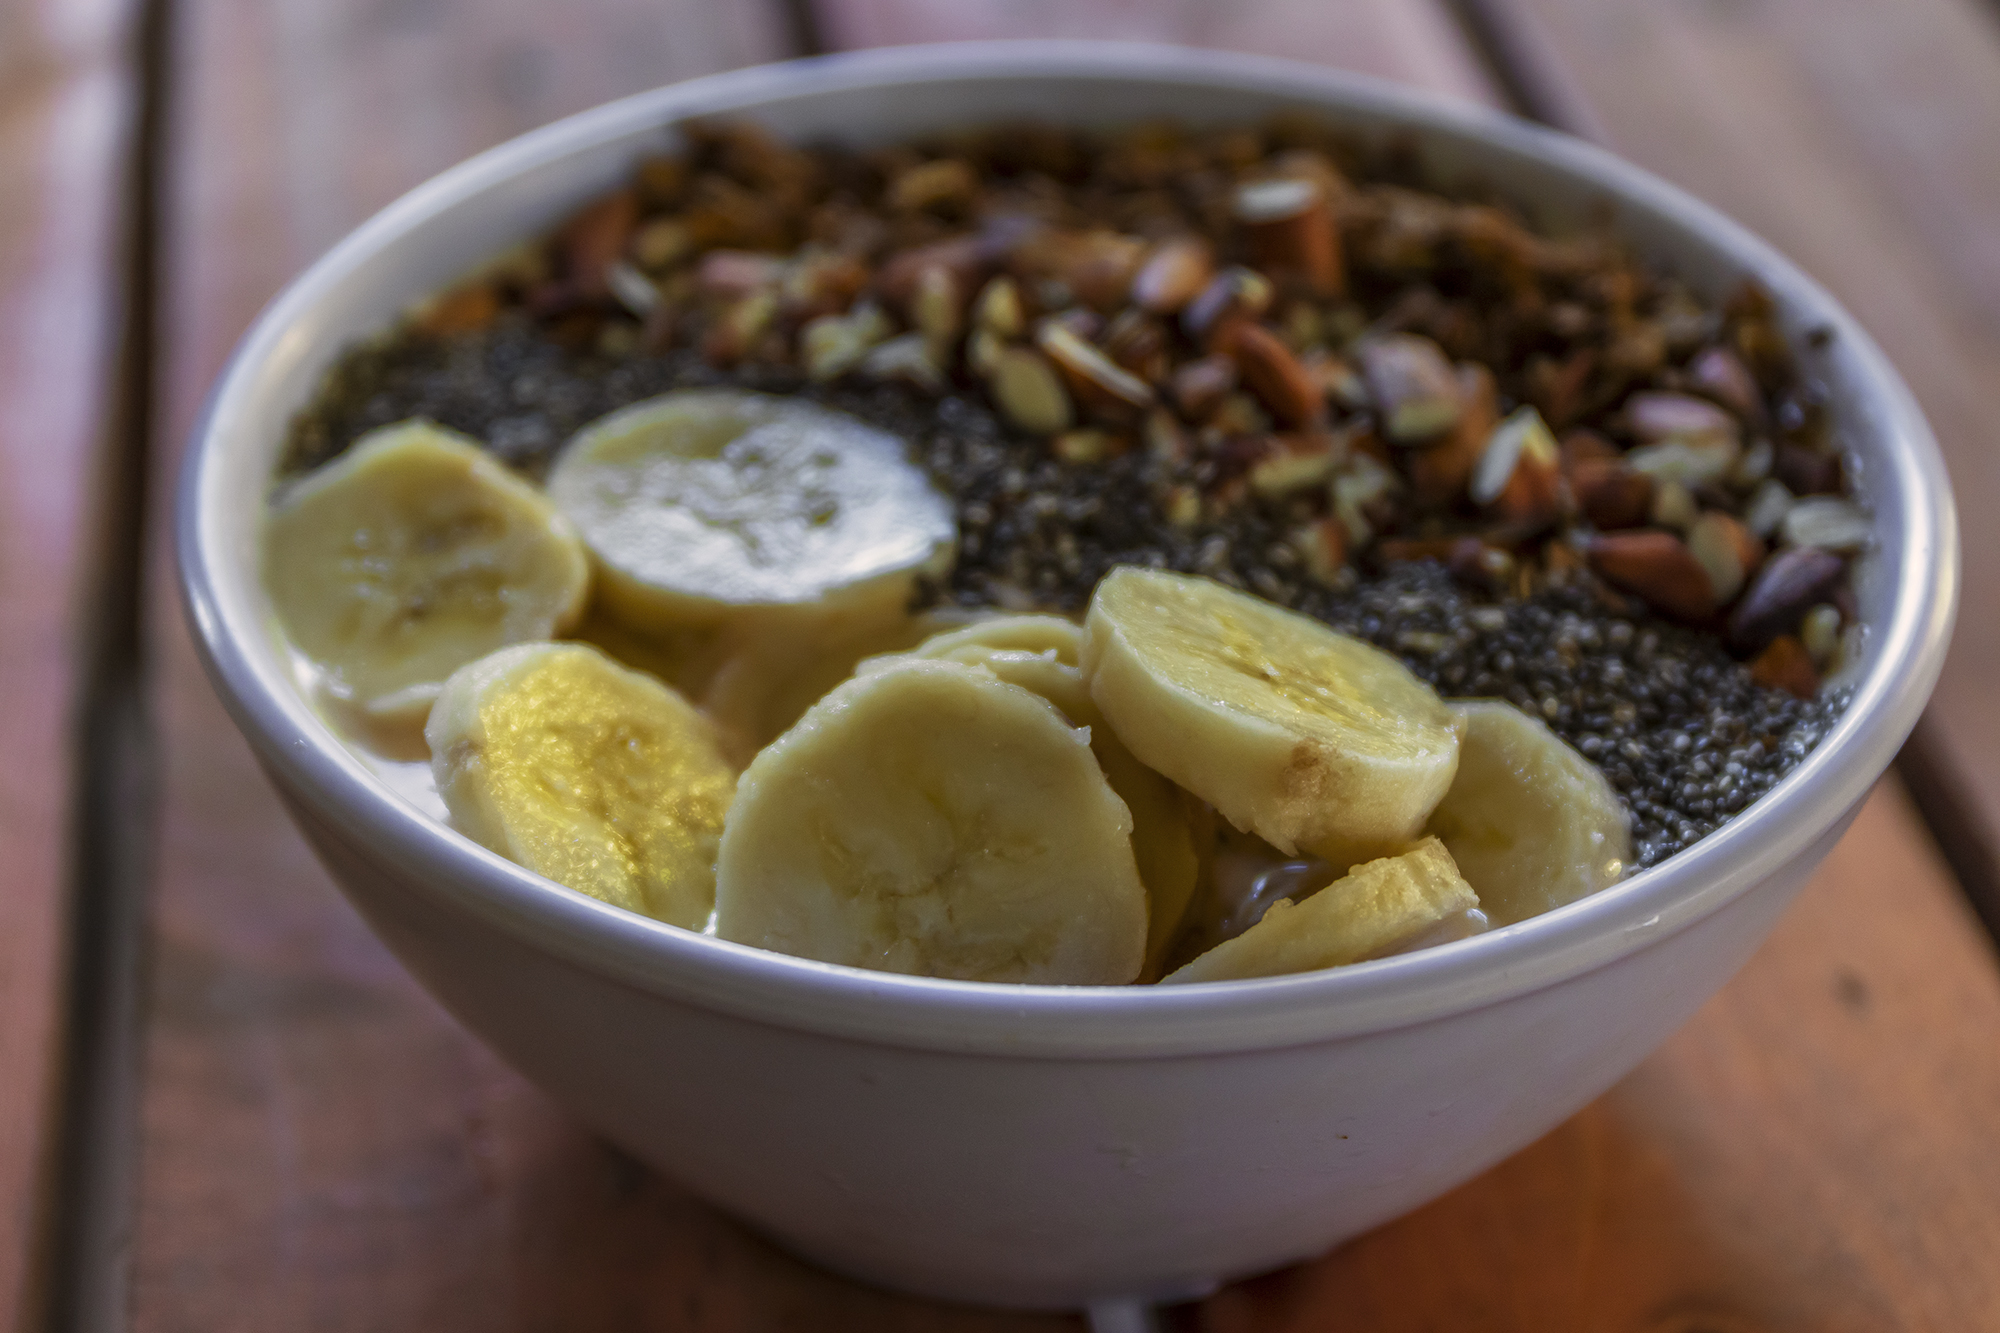 healthy farm to table smoothie bowl breakfast cabarete